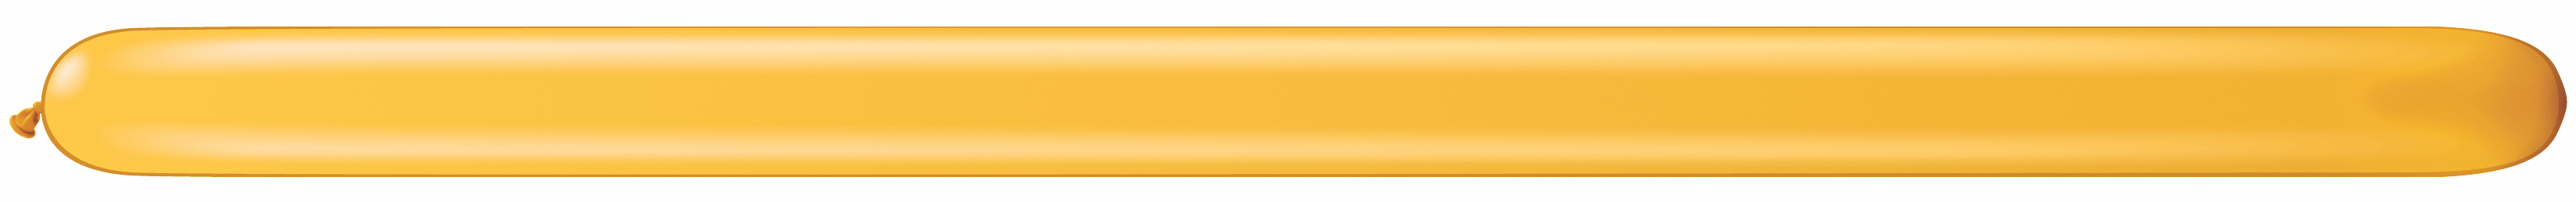 160Q Goldenrod Specialty Entertainer Balloons (100 Count)